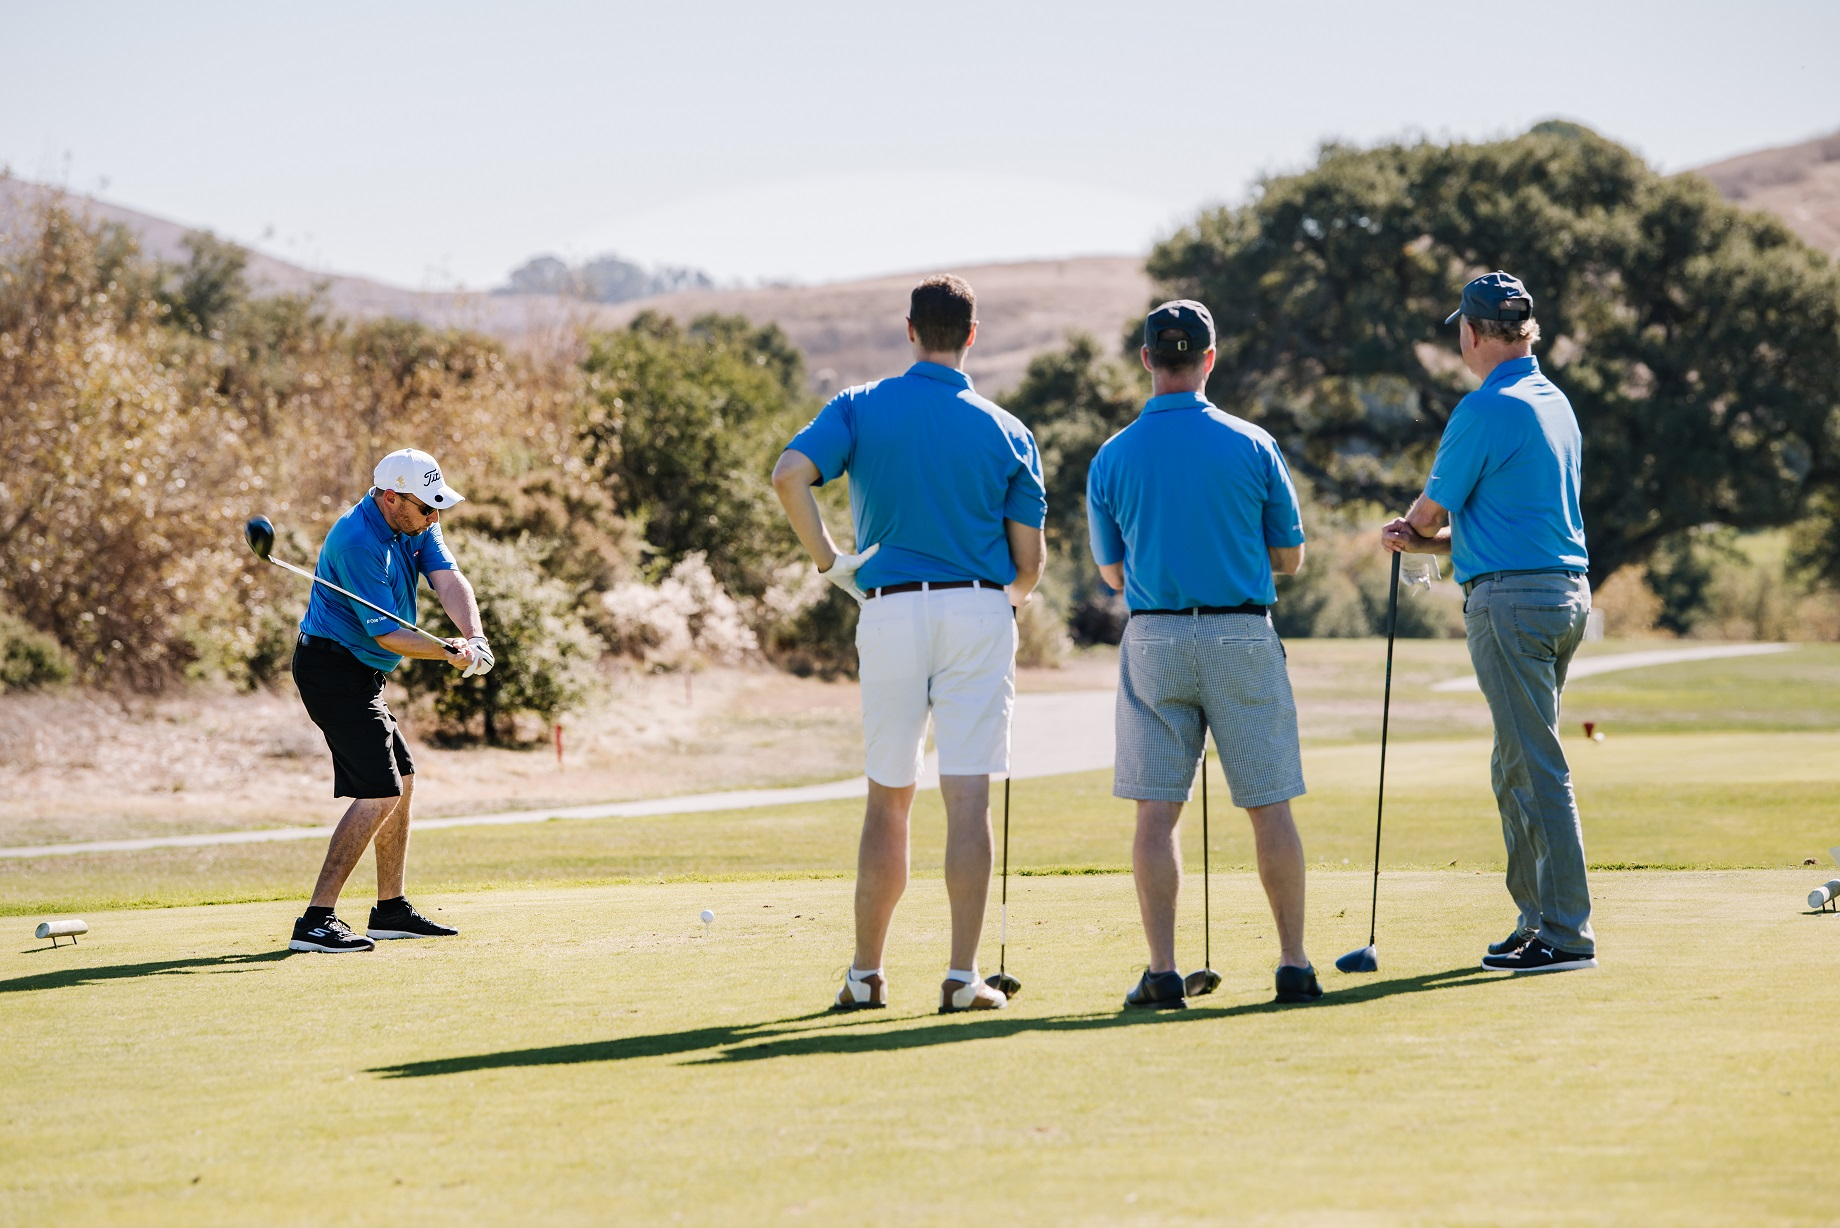 A group of golfers in Napa enjoying the course